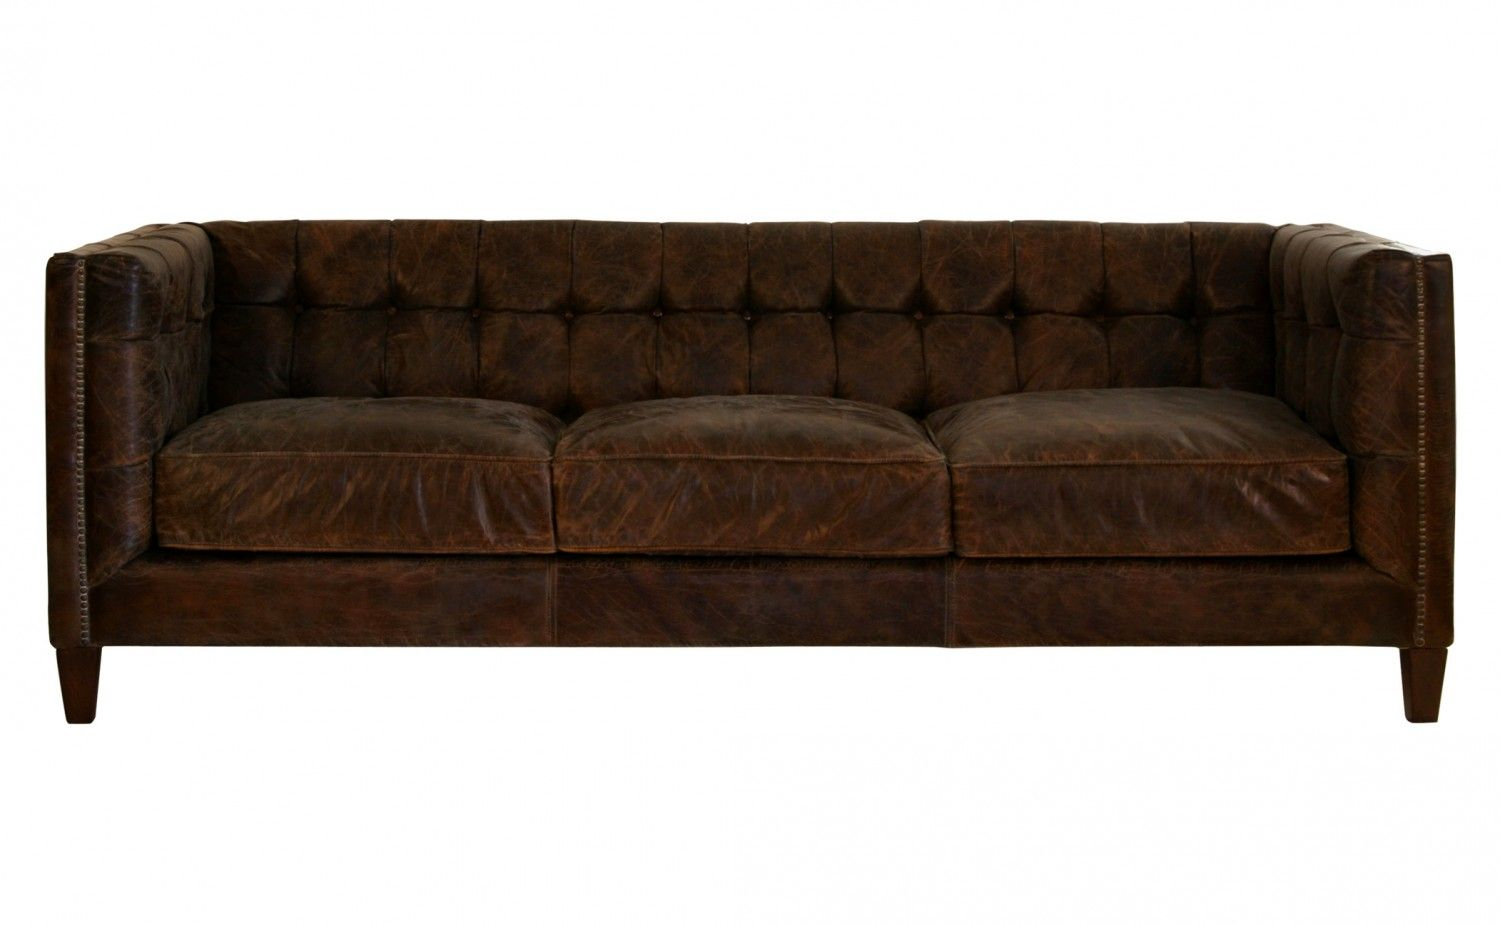 Distressed Leather, Tufting, Brass Nailheads And Low Profile. Dreamy...  . Leather  CouchesLeather FurnitureSofa ...